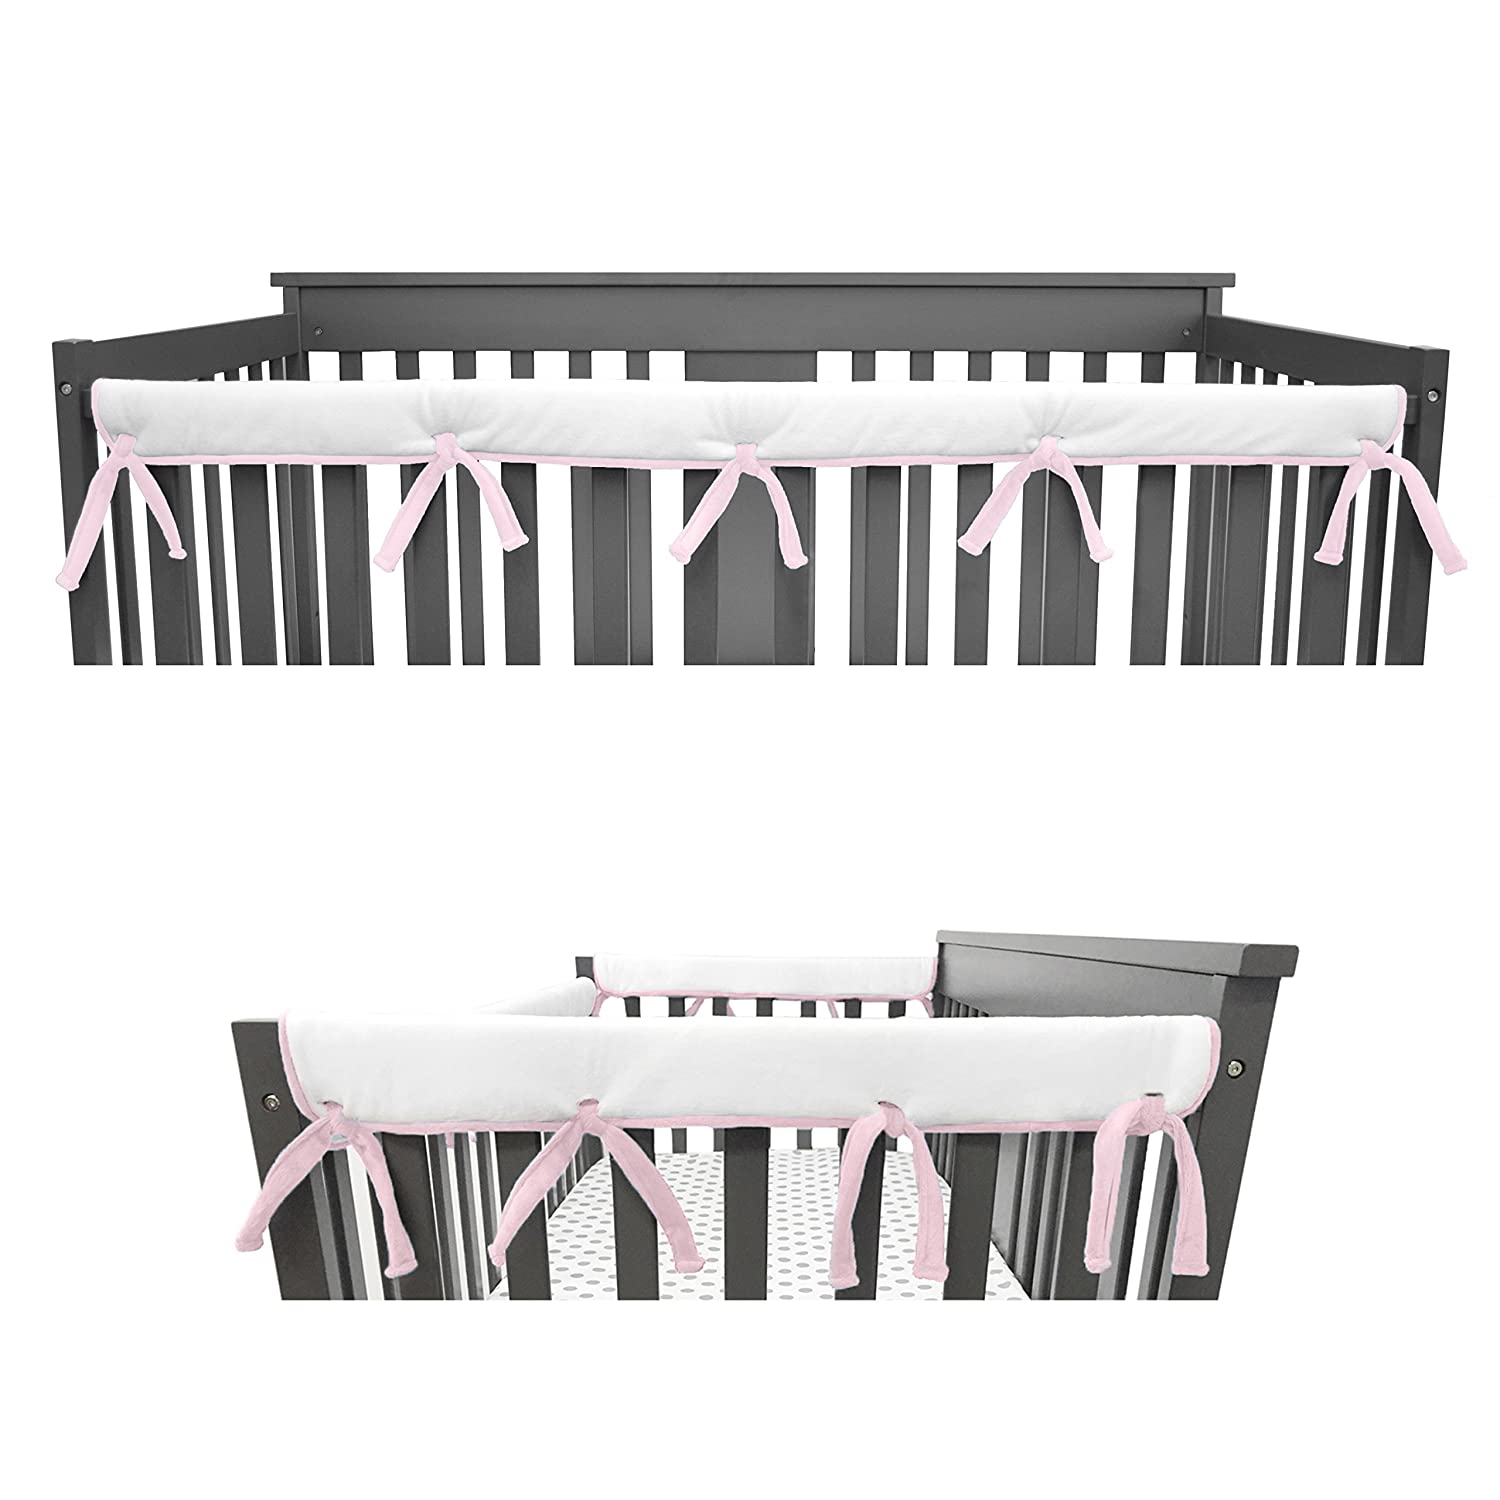 Measuring up to 4 Folded Blue//White American Baby Company Heavenly Soft Narrow Reversible Crib Cover Set for 1 Long Rail /& 2 Side Rails